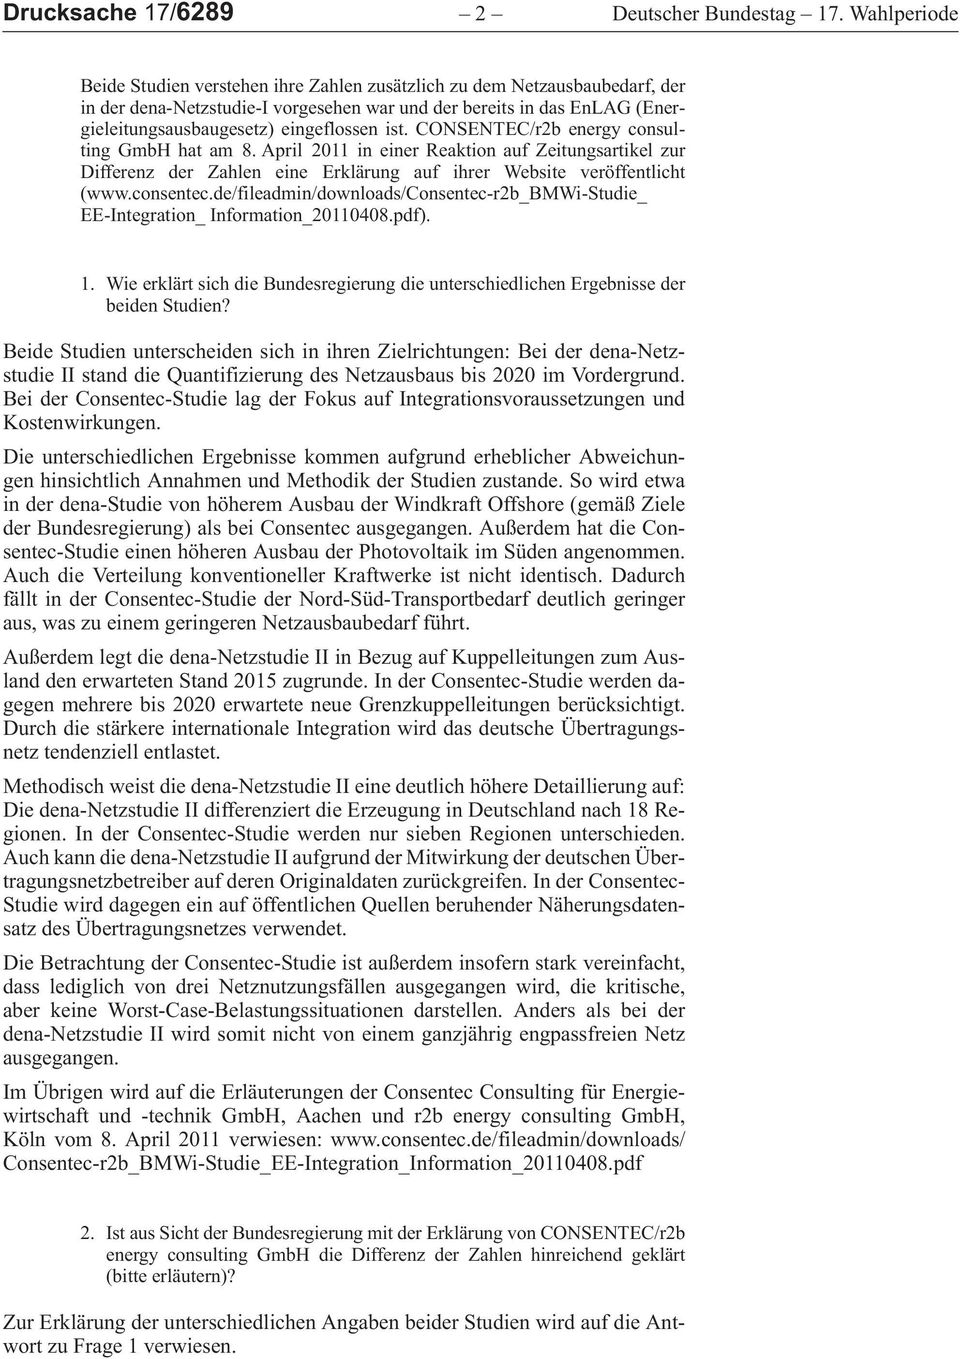 CONSENTEC/r2benergyconsultingGmbHhatam8.April2011ineinerReaktionaufZeitungsartikelzur DifferenzderZahleneineErklärungaufihrerWebsiteveröffentlicht (www.consentec.